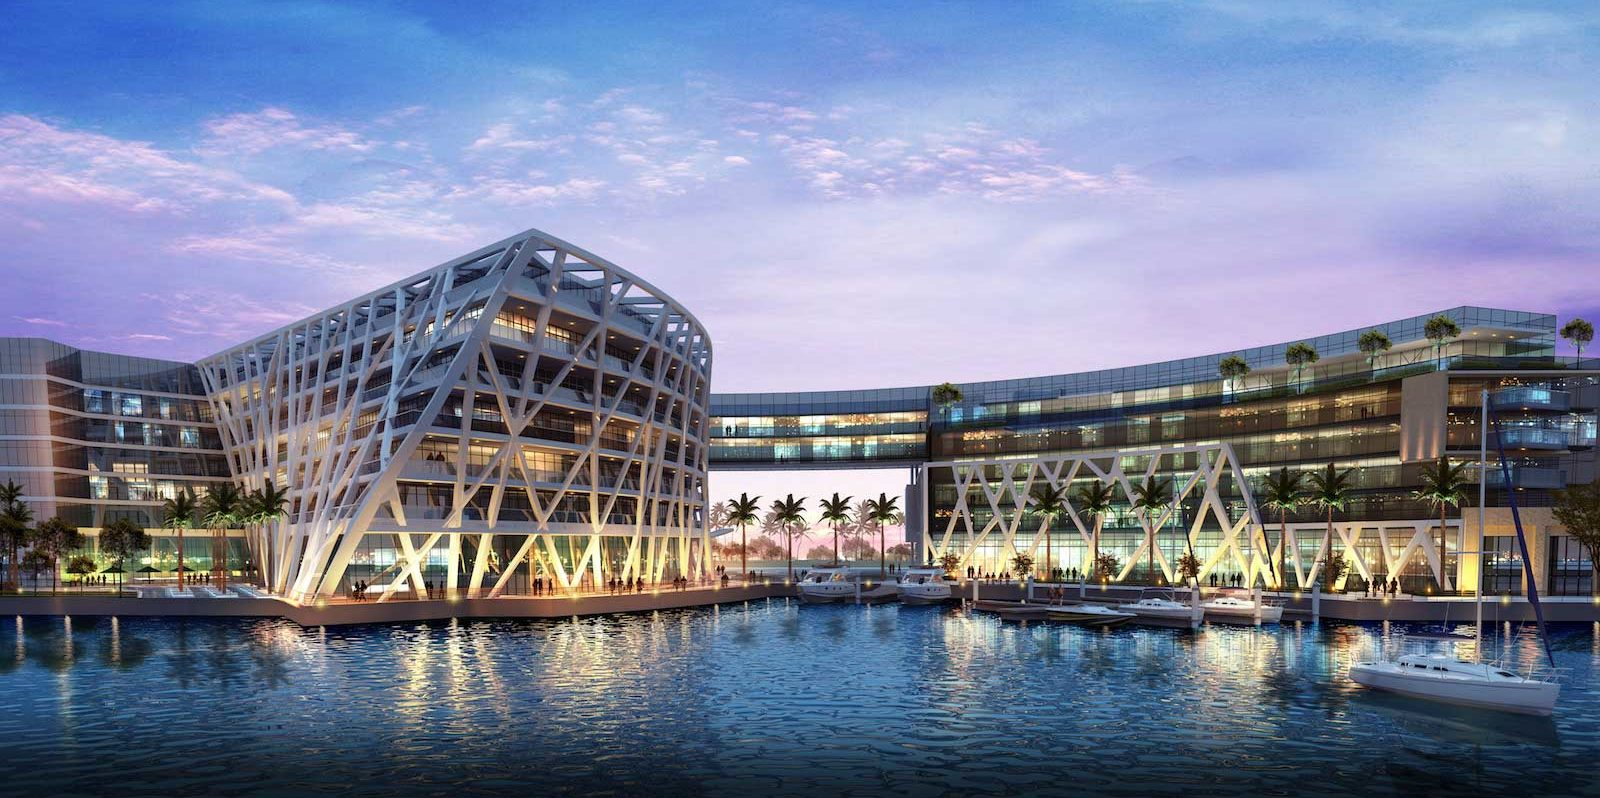 The exterior evokes the lateen sails of the traditional dhow boats that the region was once famed for building.